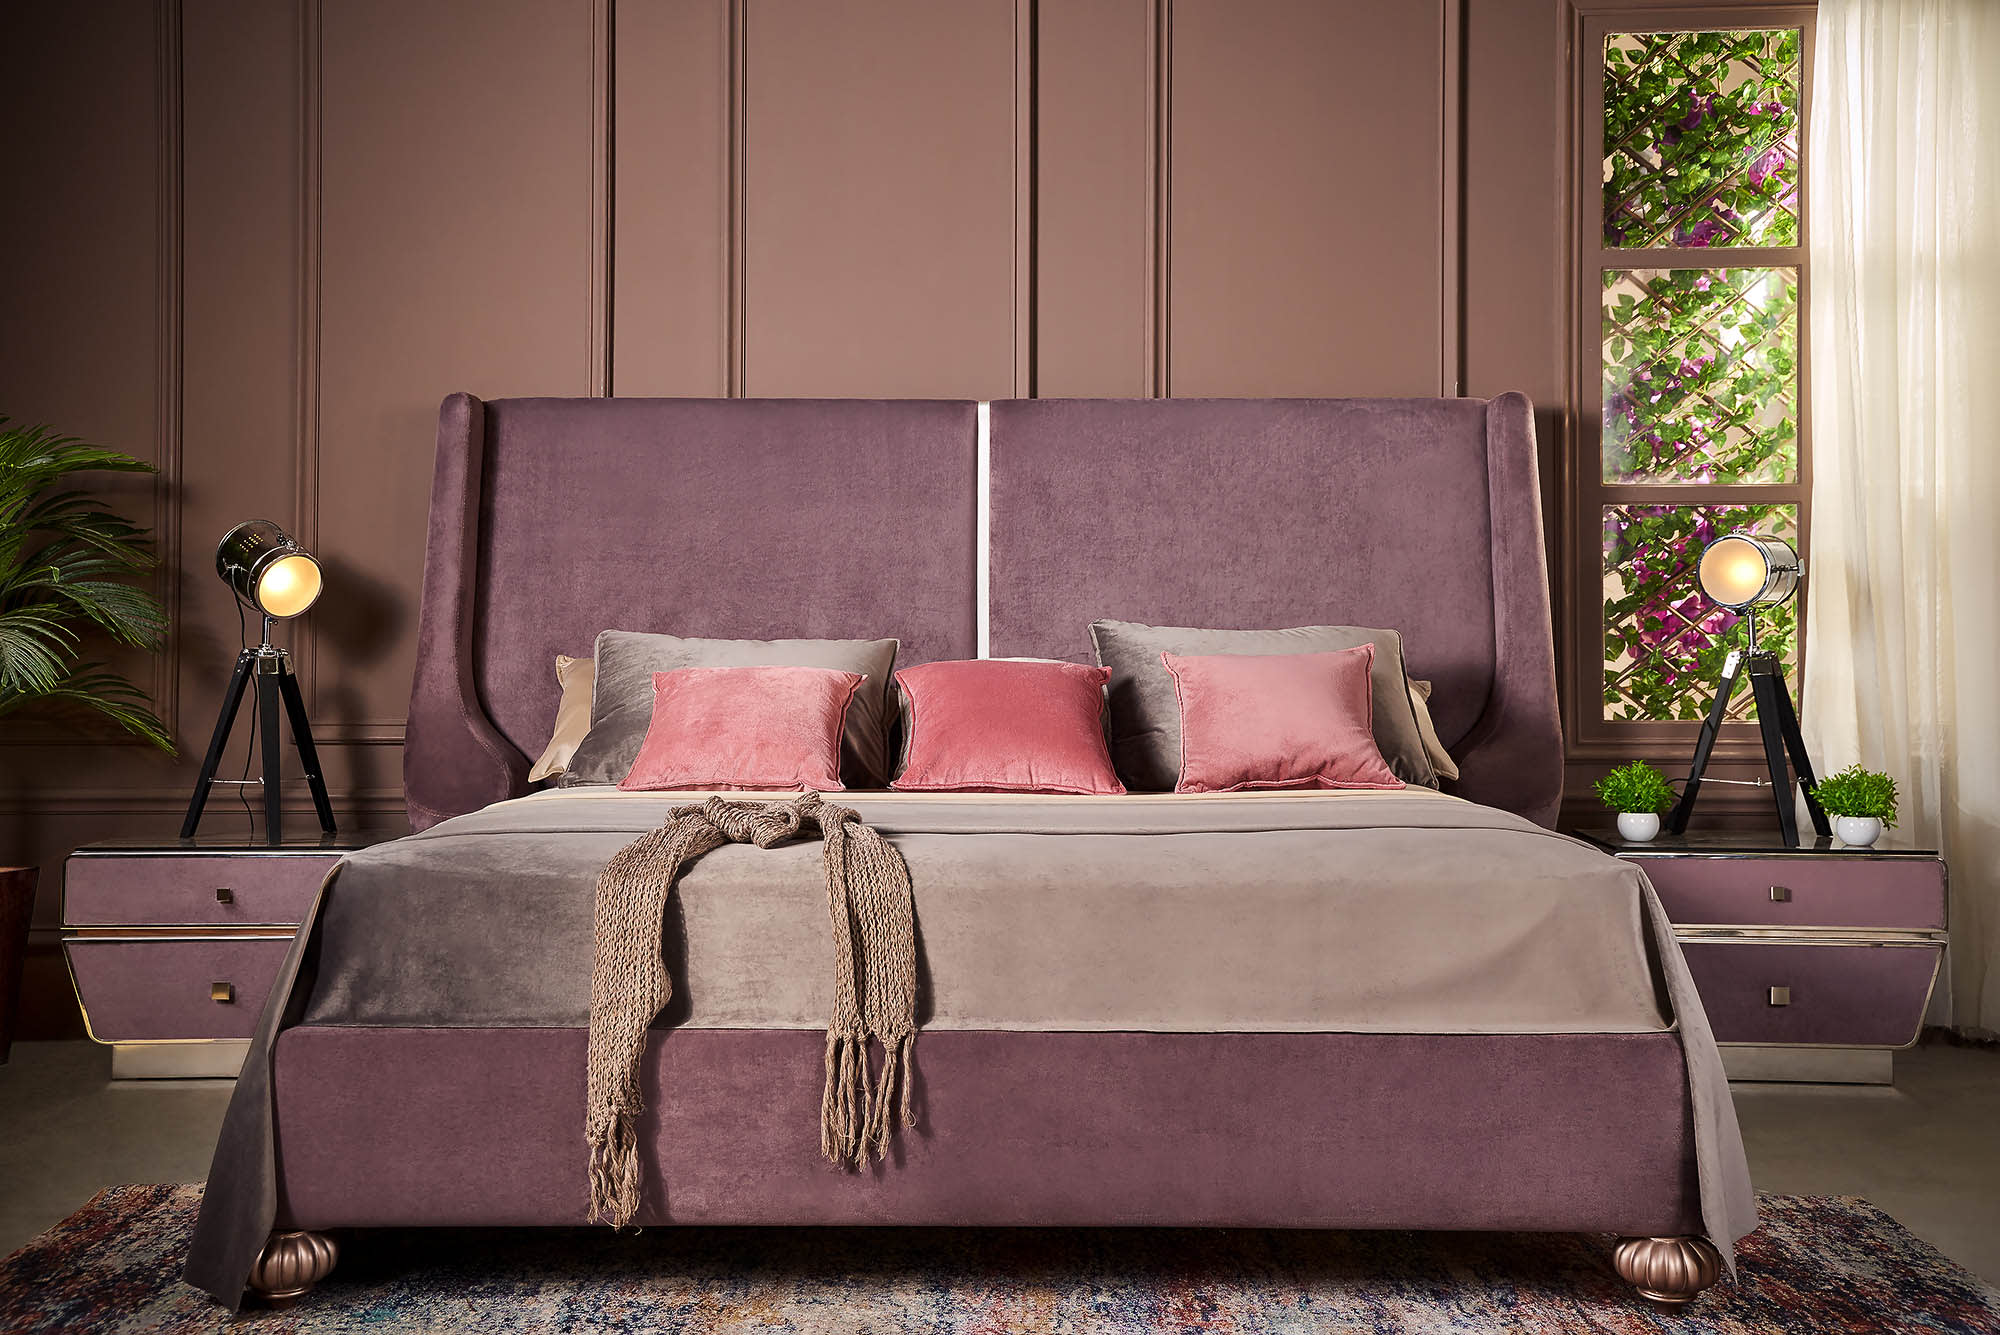 Luxury purple velvet bedroom - Richie by Shoulah - Furniture Photography - Egypt